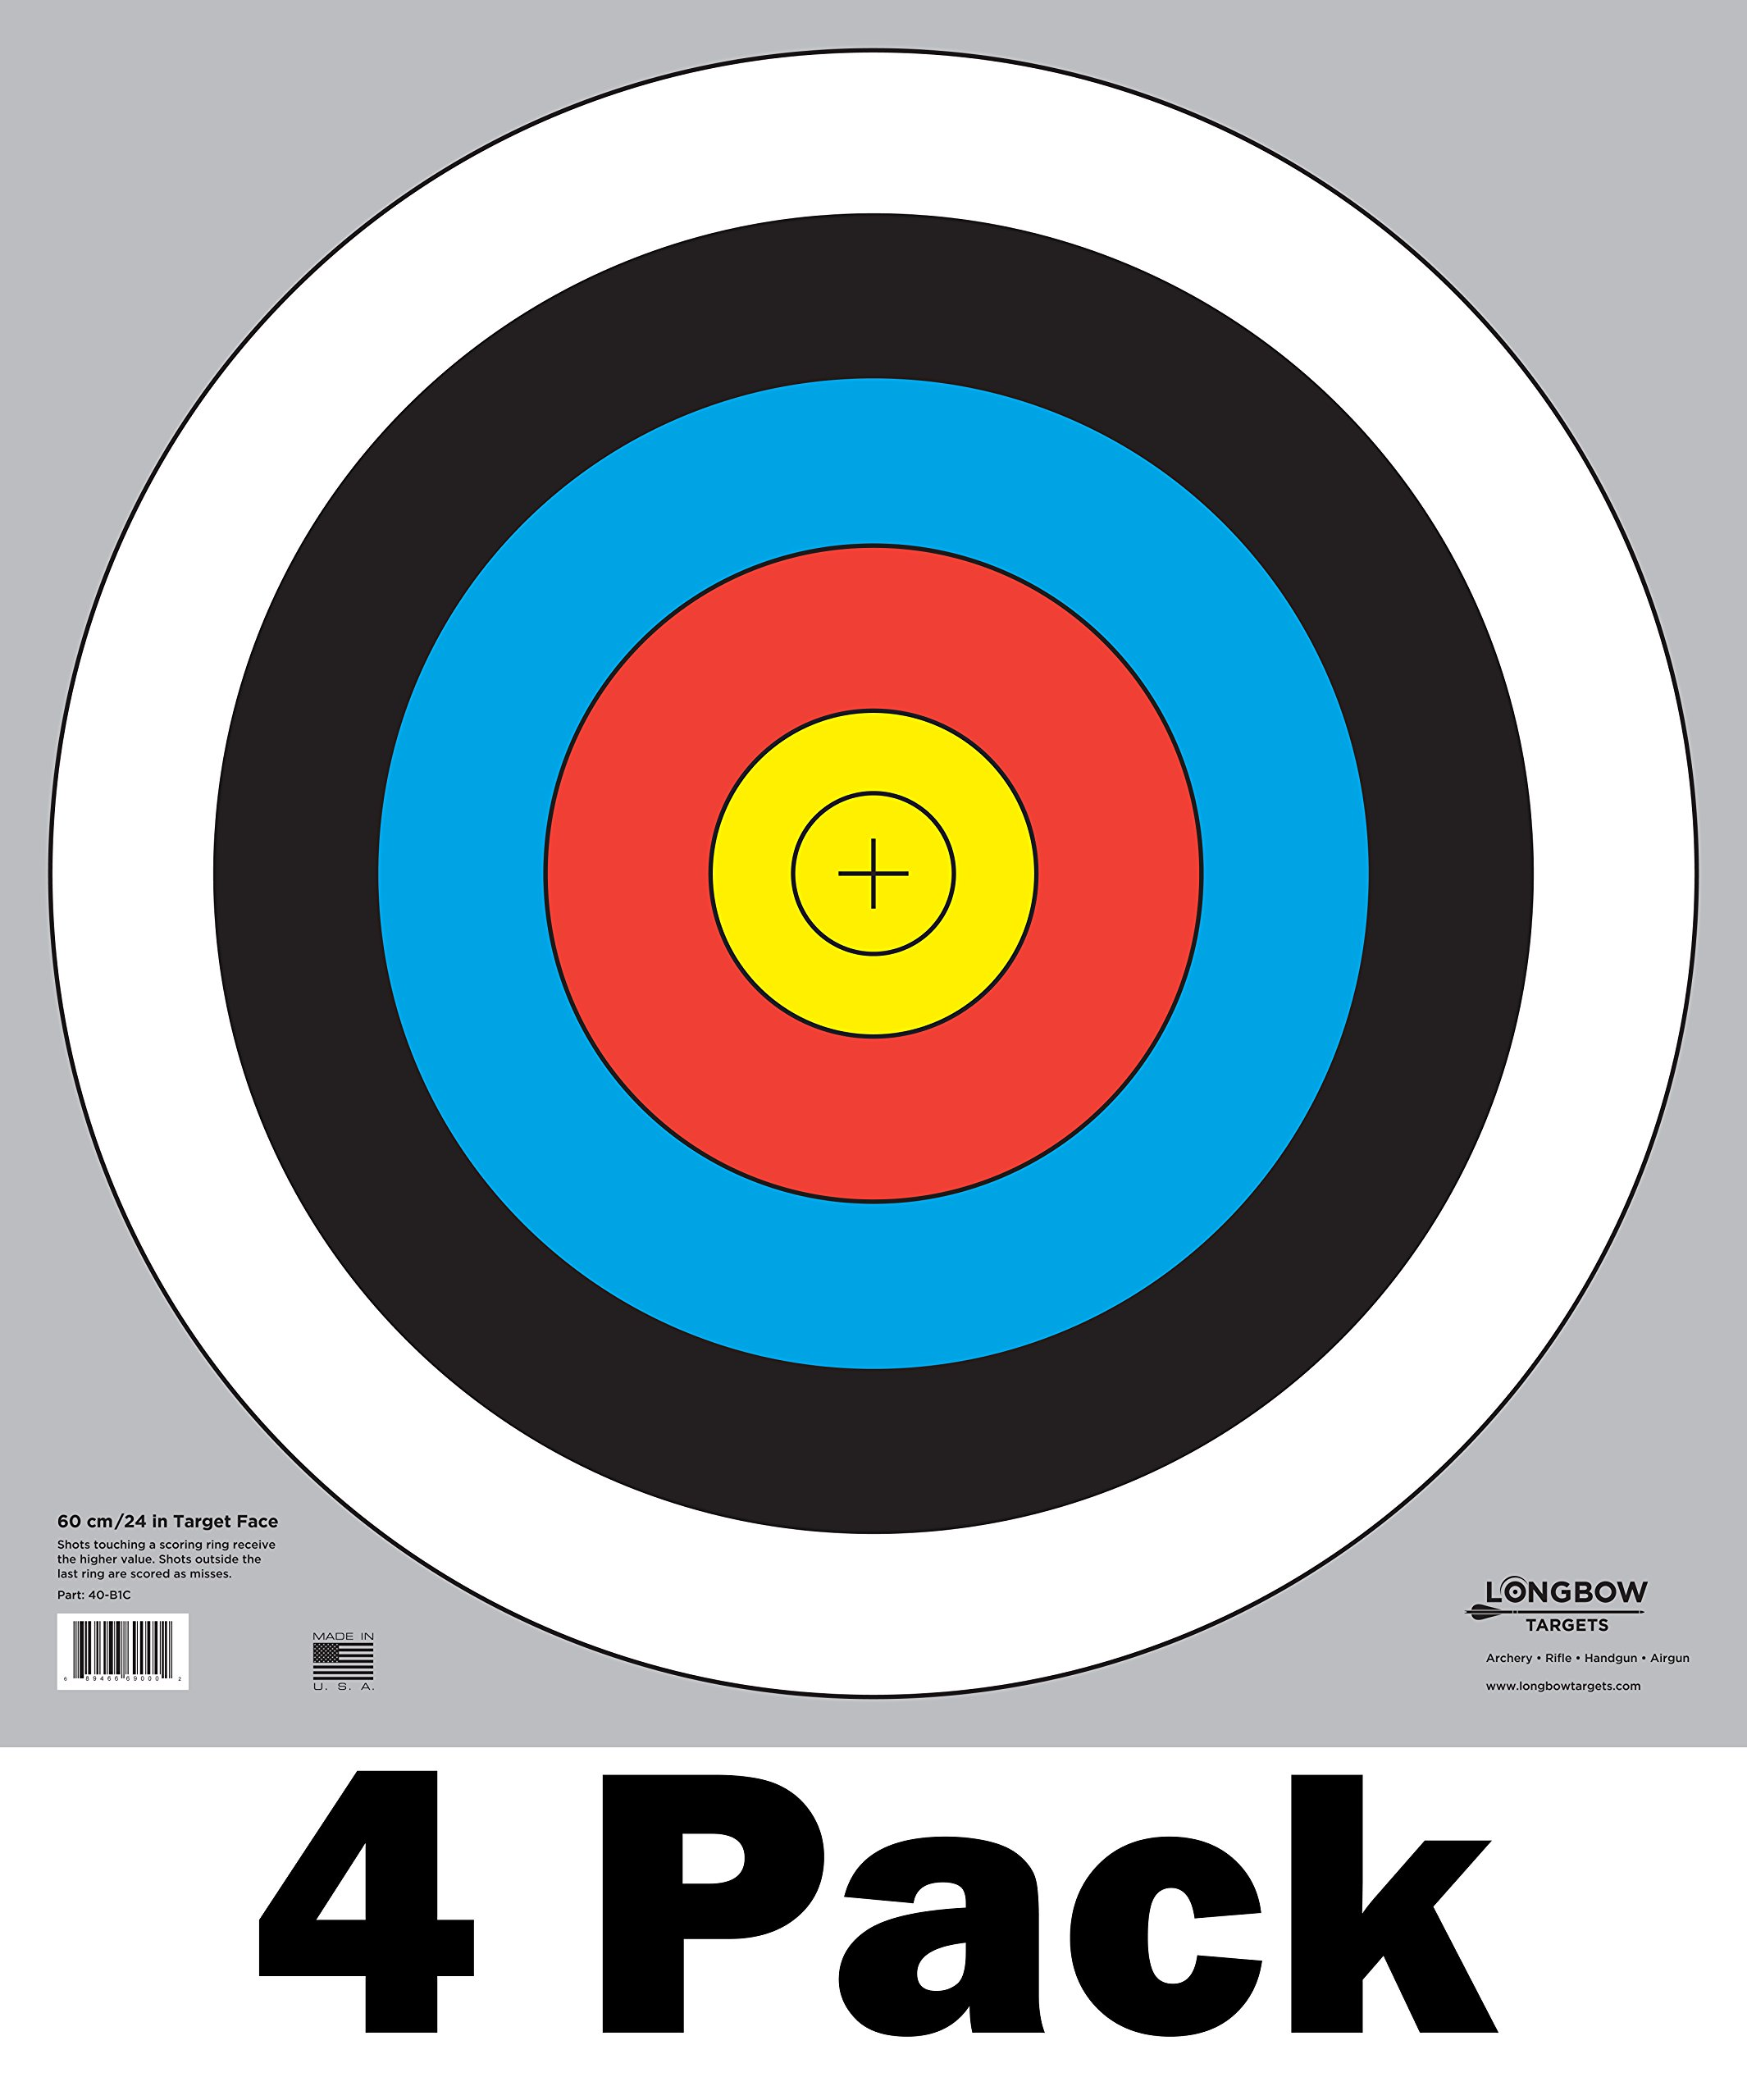 60 cm / 24 in Bullseye Archery and Gun Targets by Longbow Targets (4 Pack)